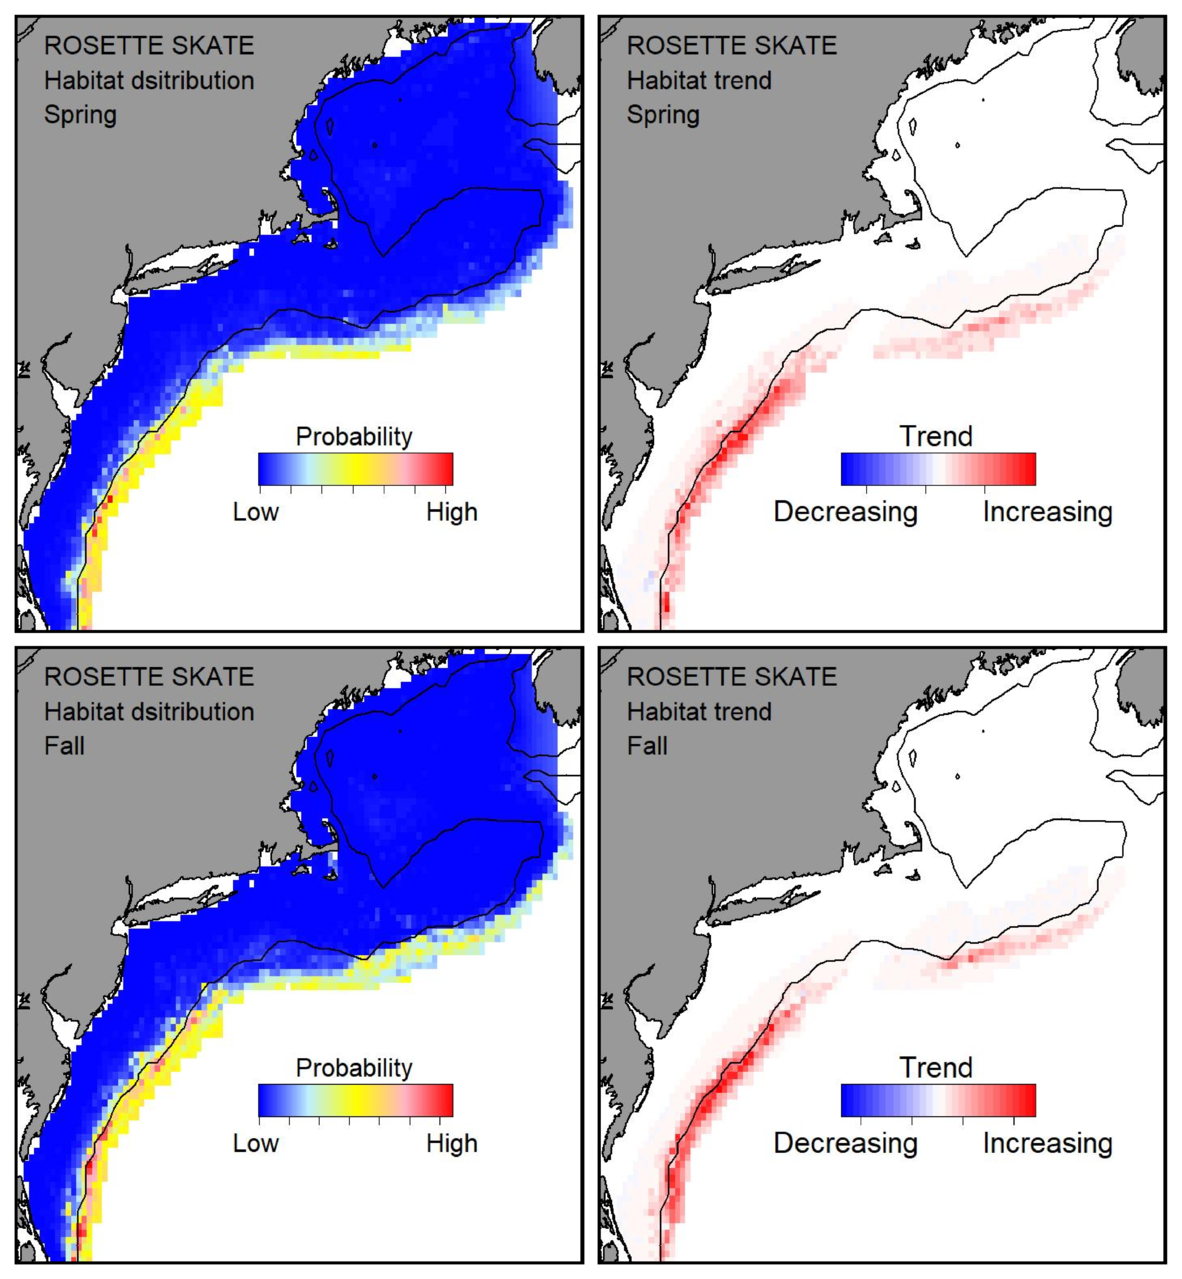 Top row: Probable habitat distribution for rosette skate showing the highest concentration and increasing trend in the Gulf of Maine during the spring. Bottom row: Probable habitat distribution for rosette skate showing the highest concentration and increasing trend in the Gulf of Maine during the fall.